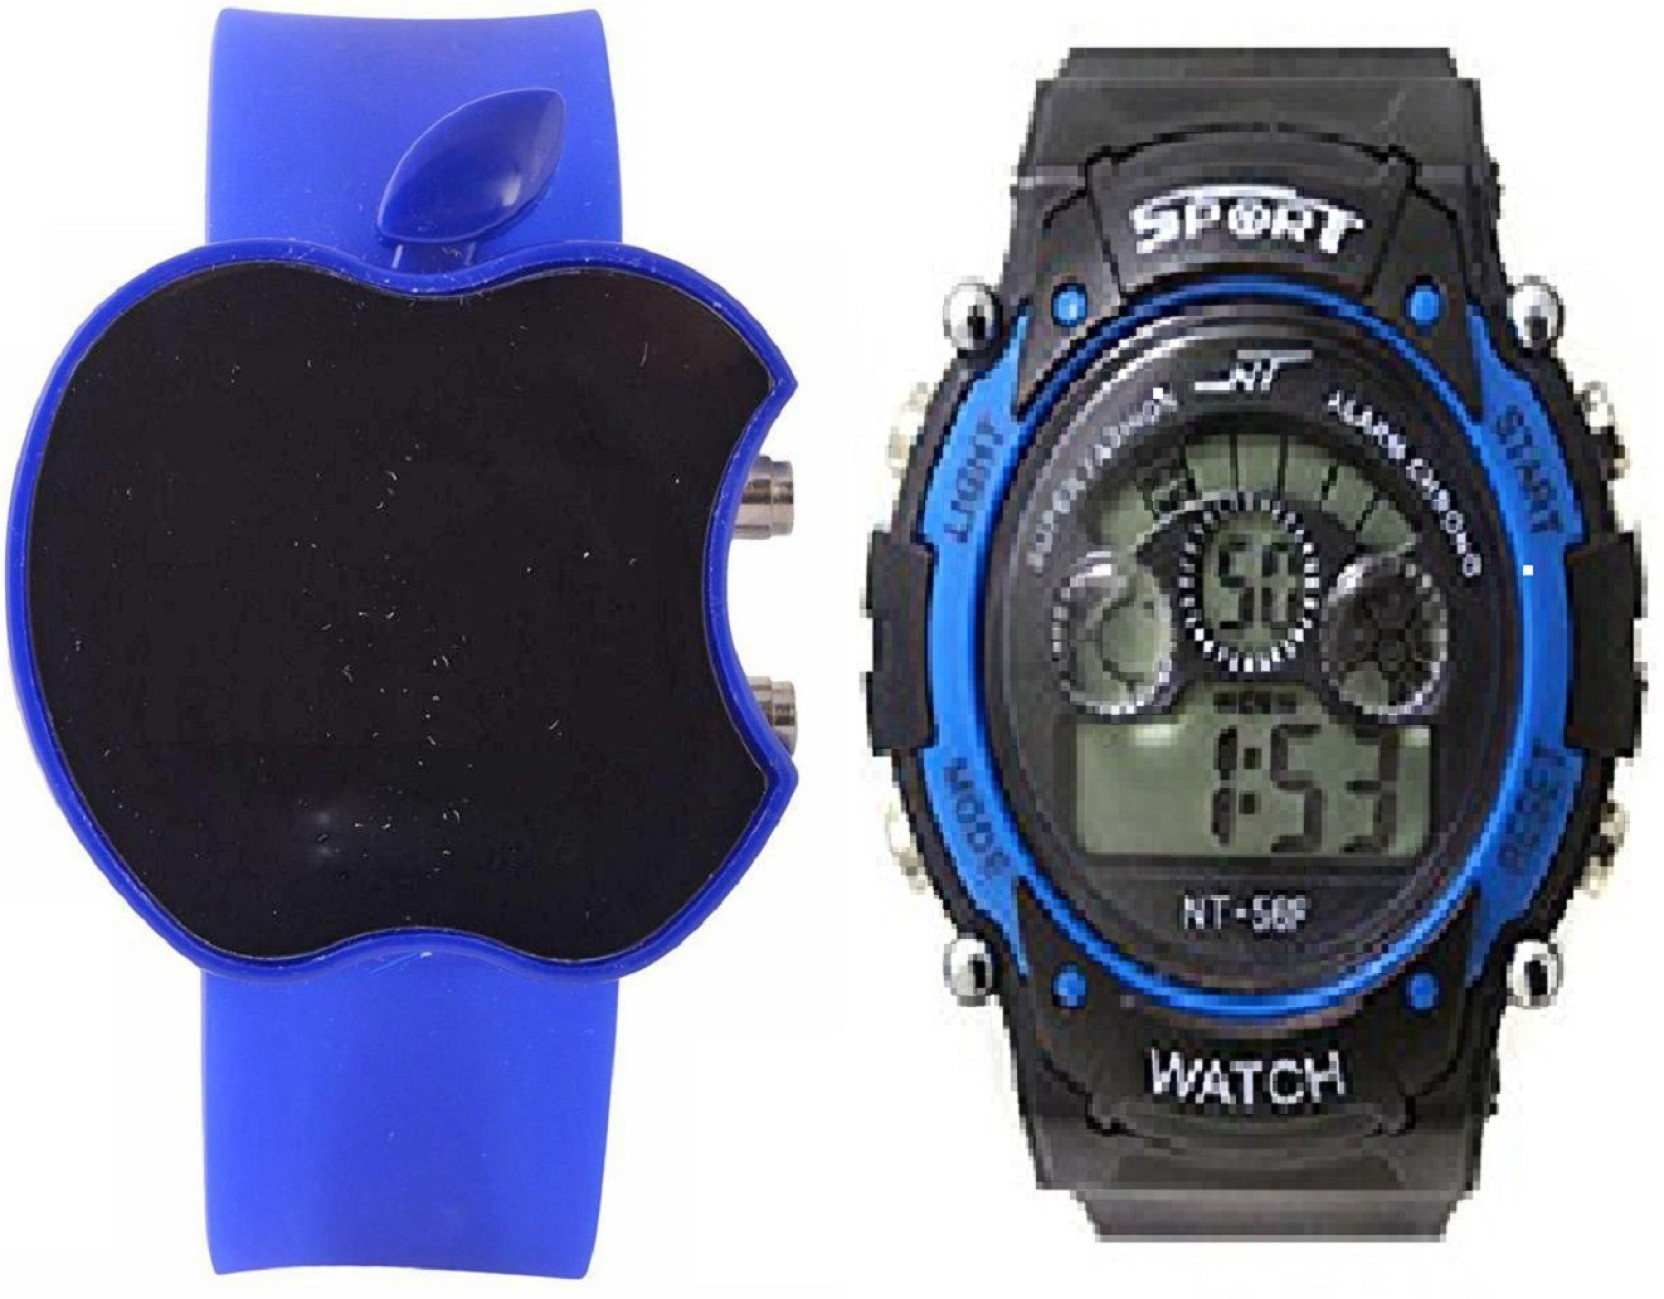 Sports stylish watches for boys rare photo